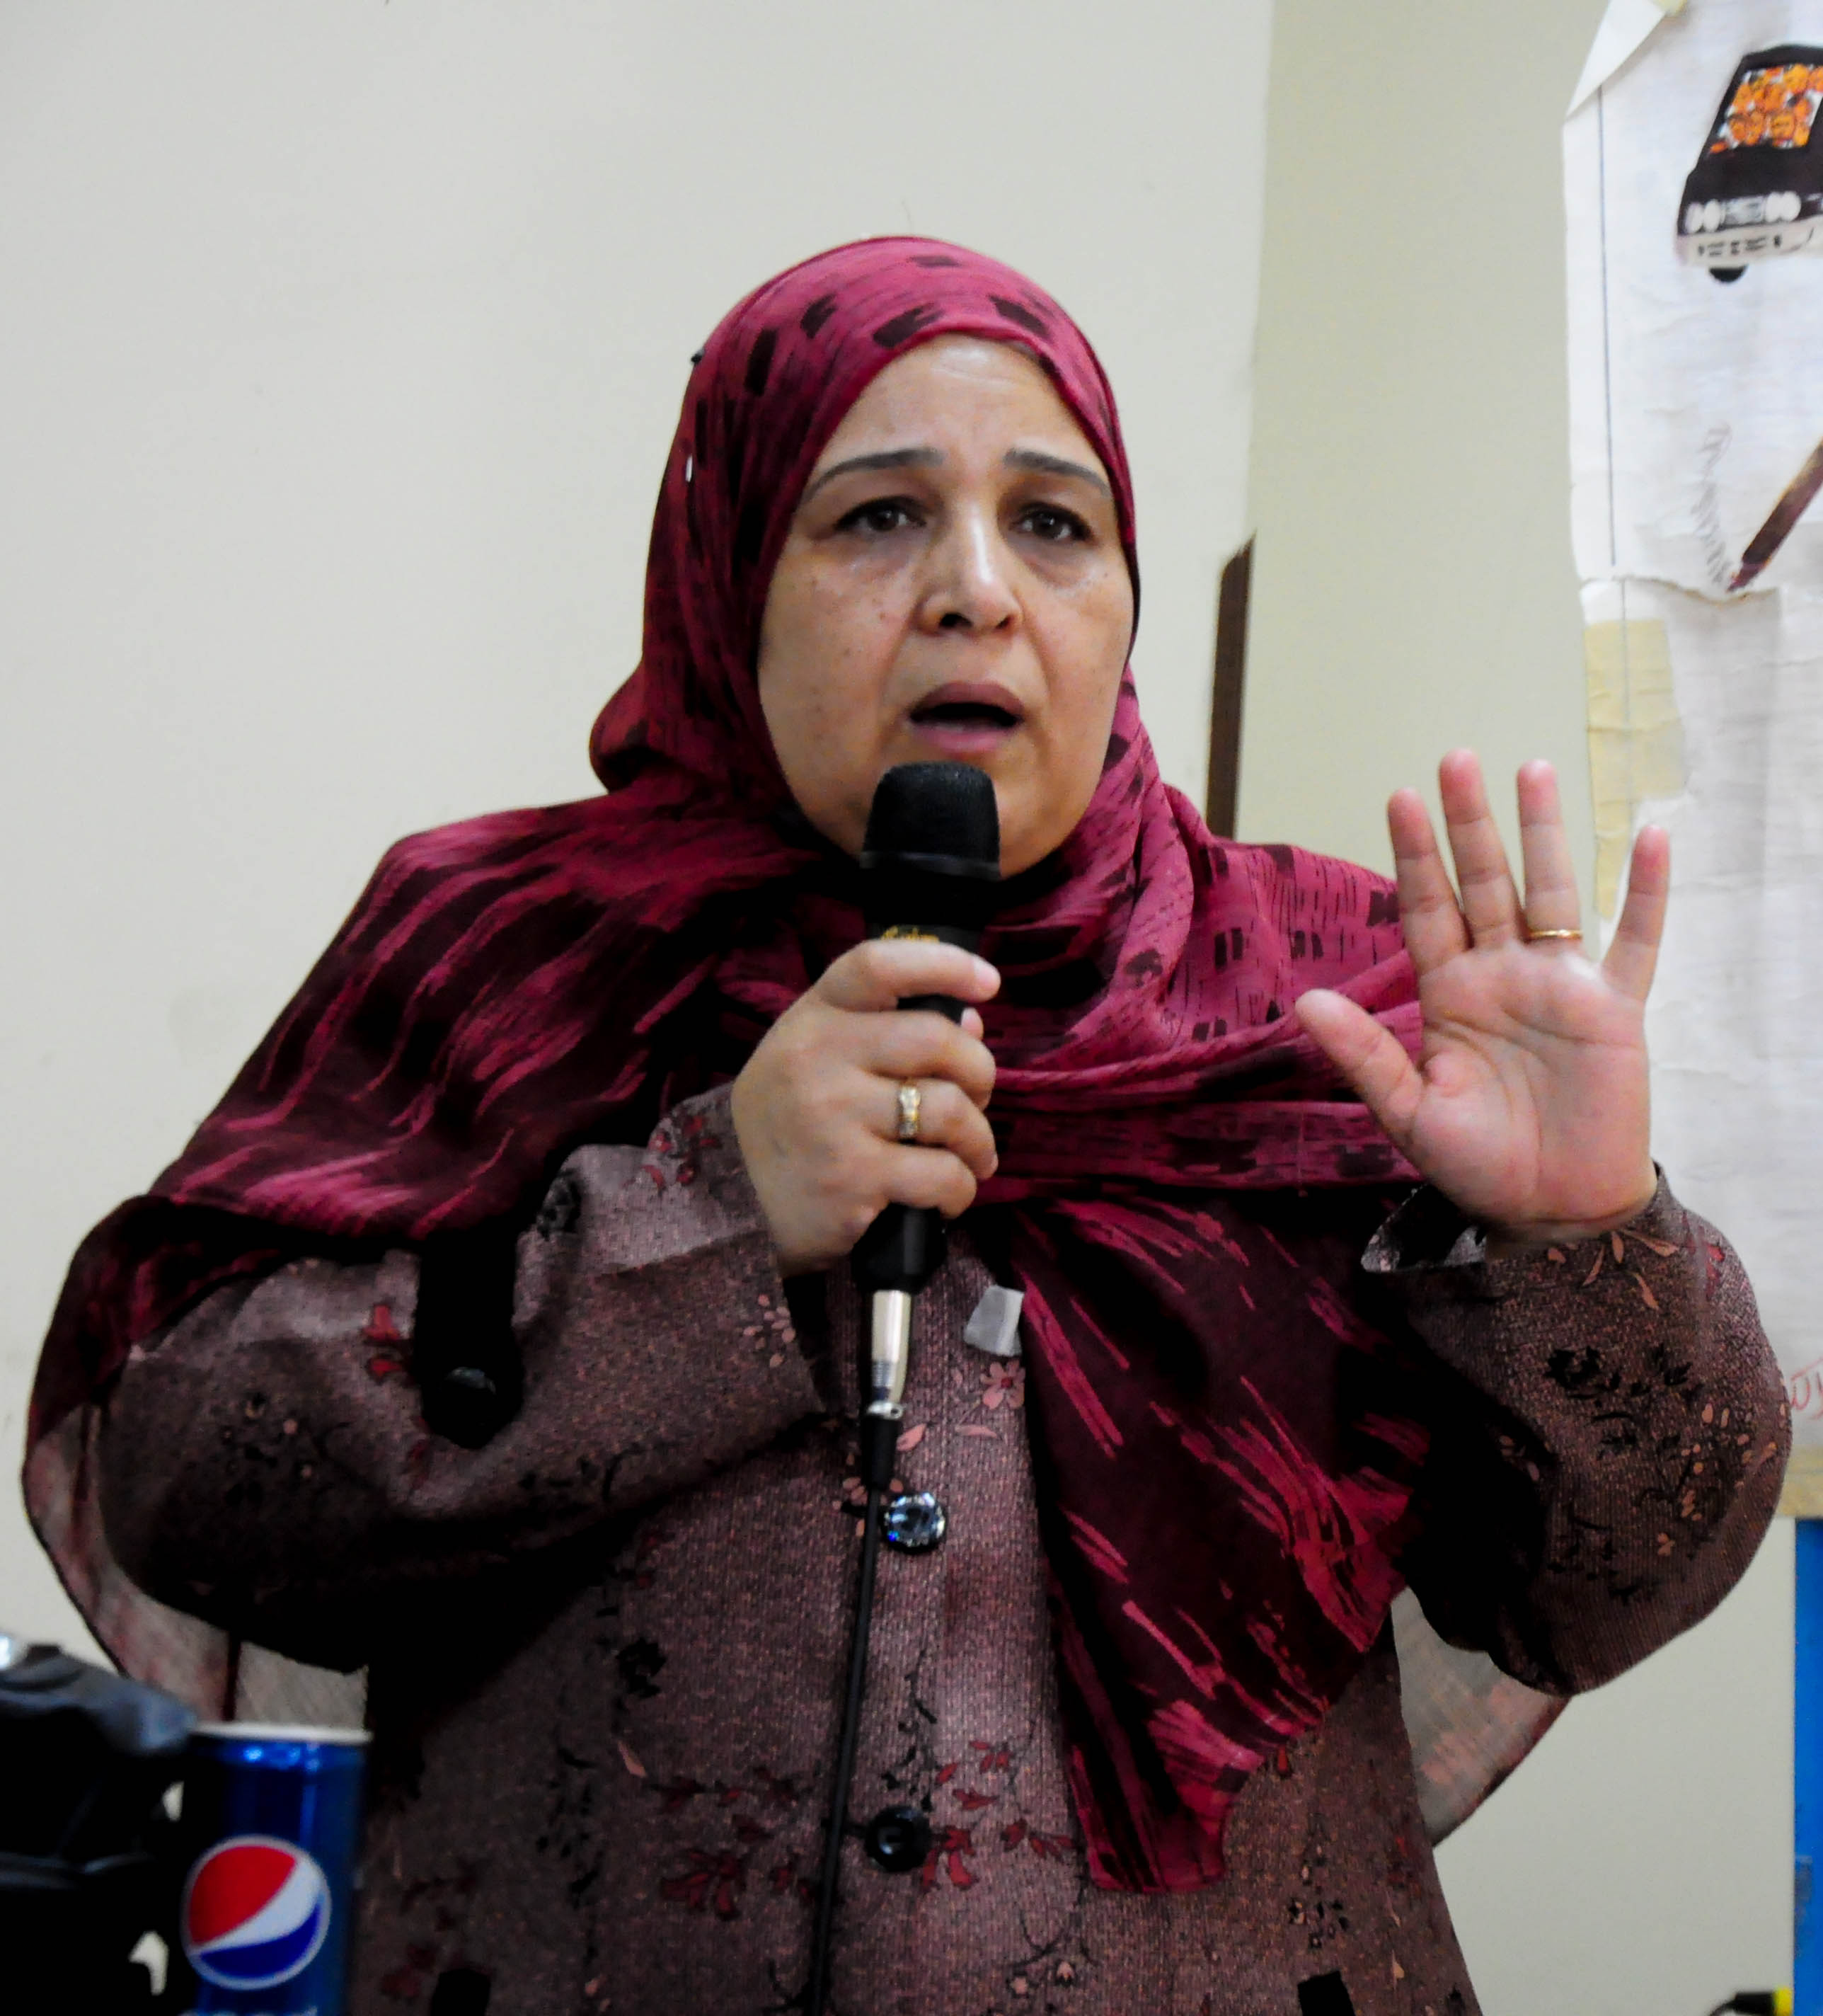 Dr. Azza Salama, who works at a government health clinic in Dar El-Salam, addresses a crowd of about 100 women in the Ezbet-Khairalla neighborhood of Cairo (Photo by Marwa Morgan)